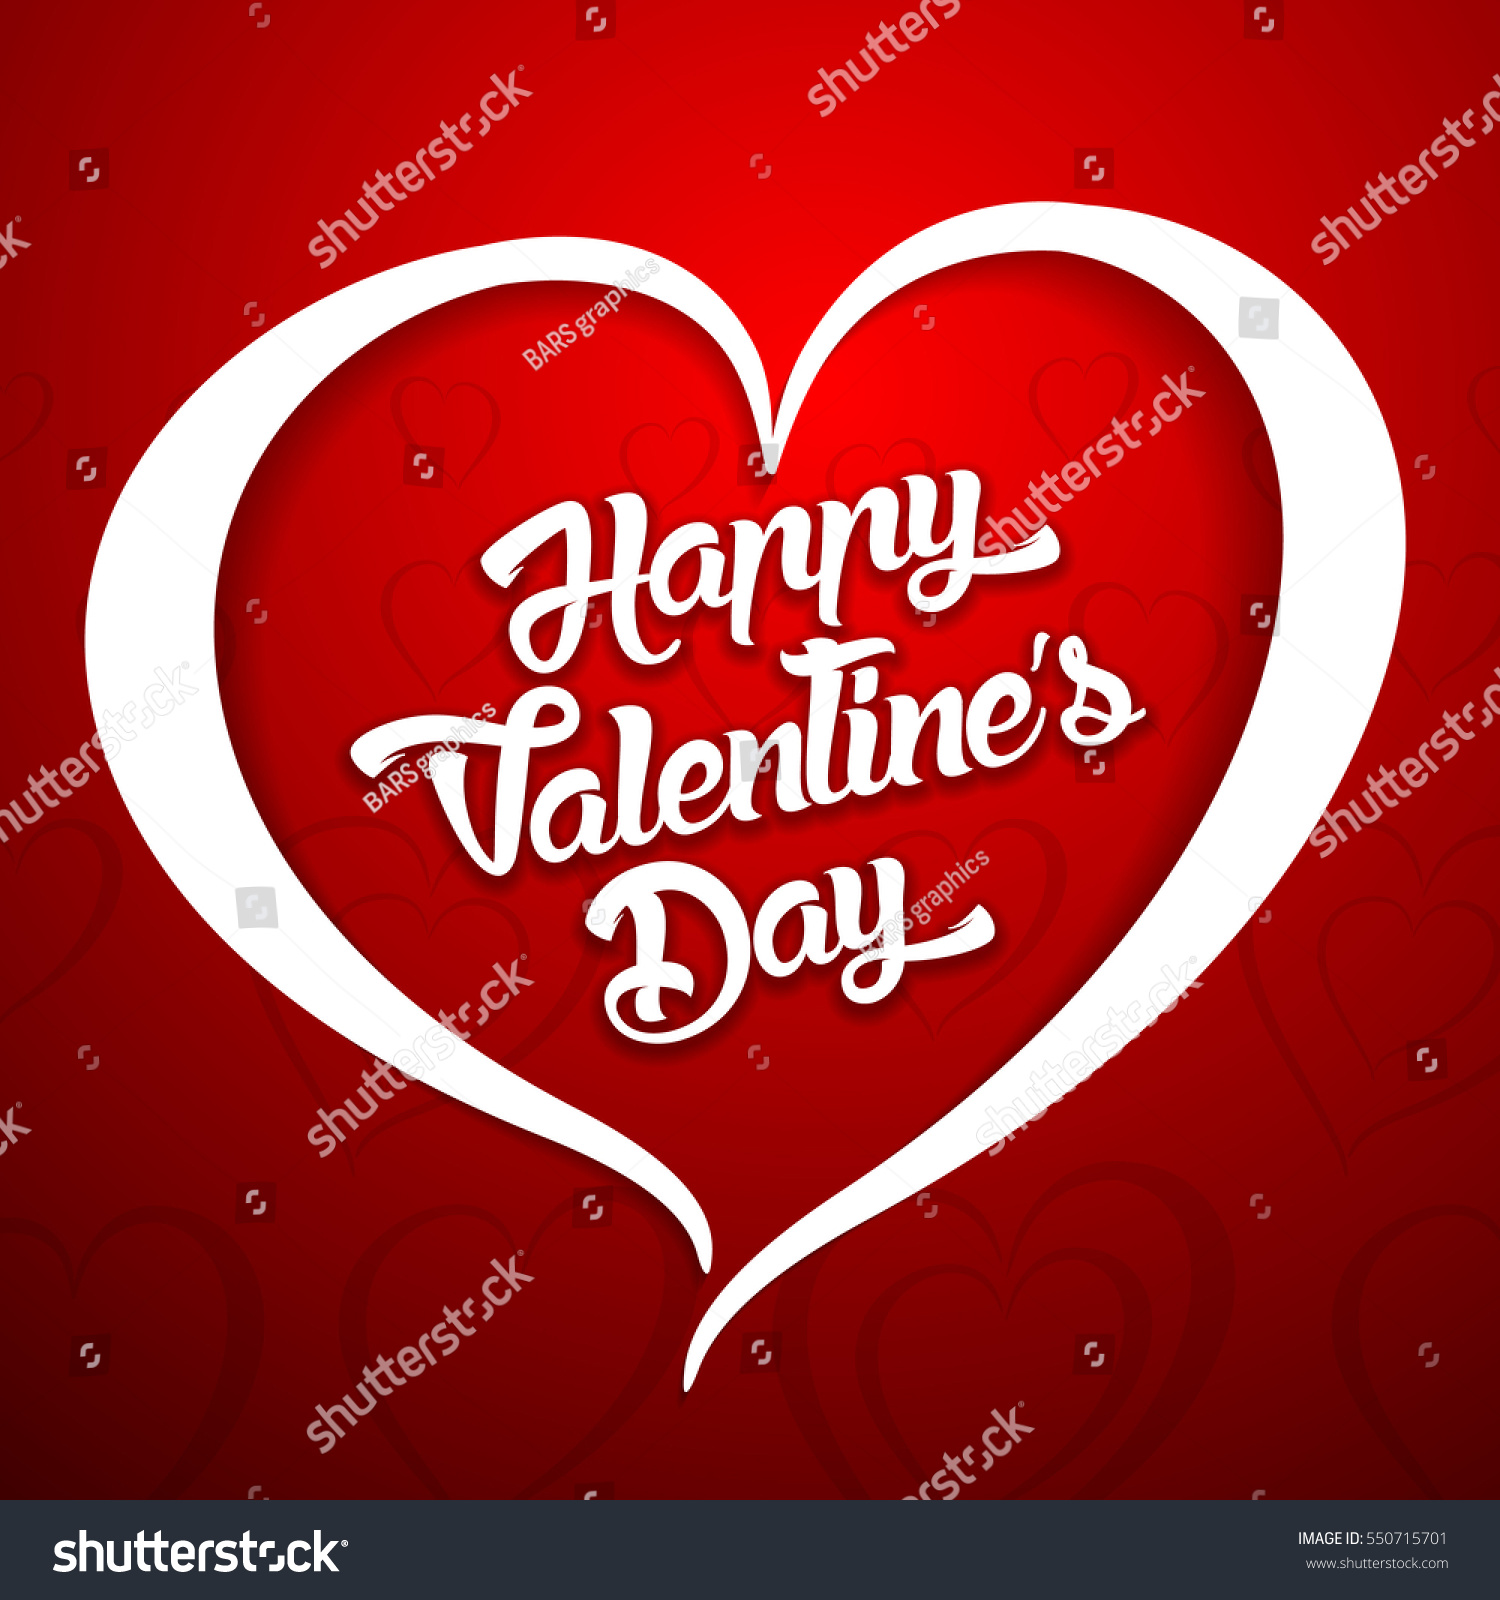 Happy Valentines Day Handwritten Lettering Design Stock Vector